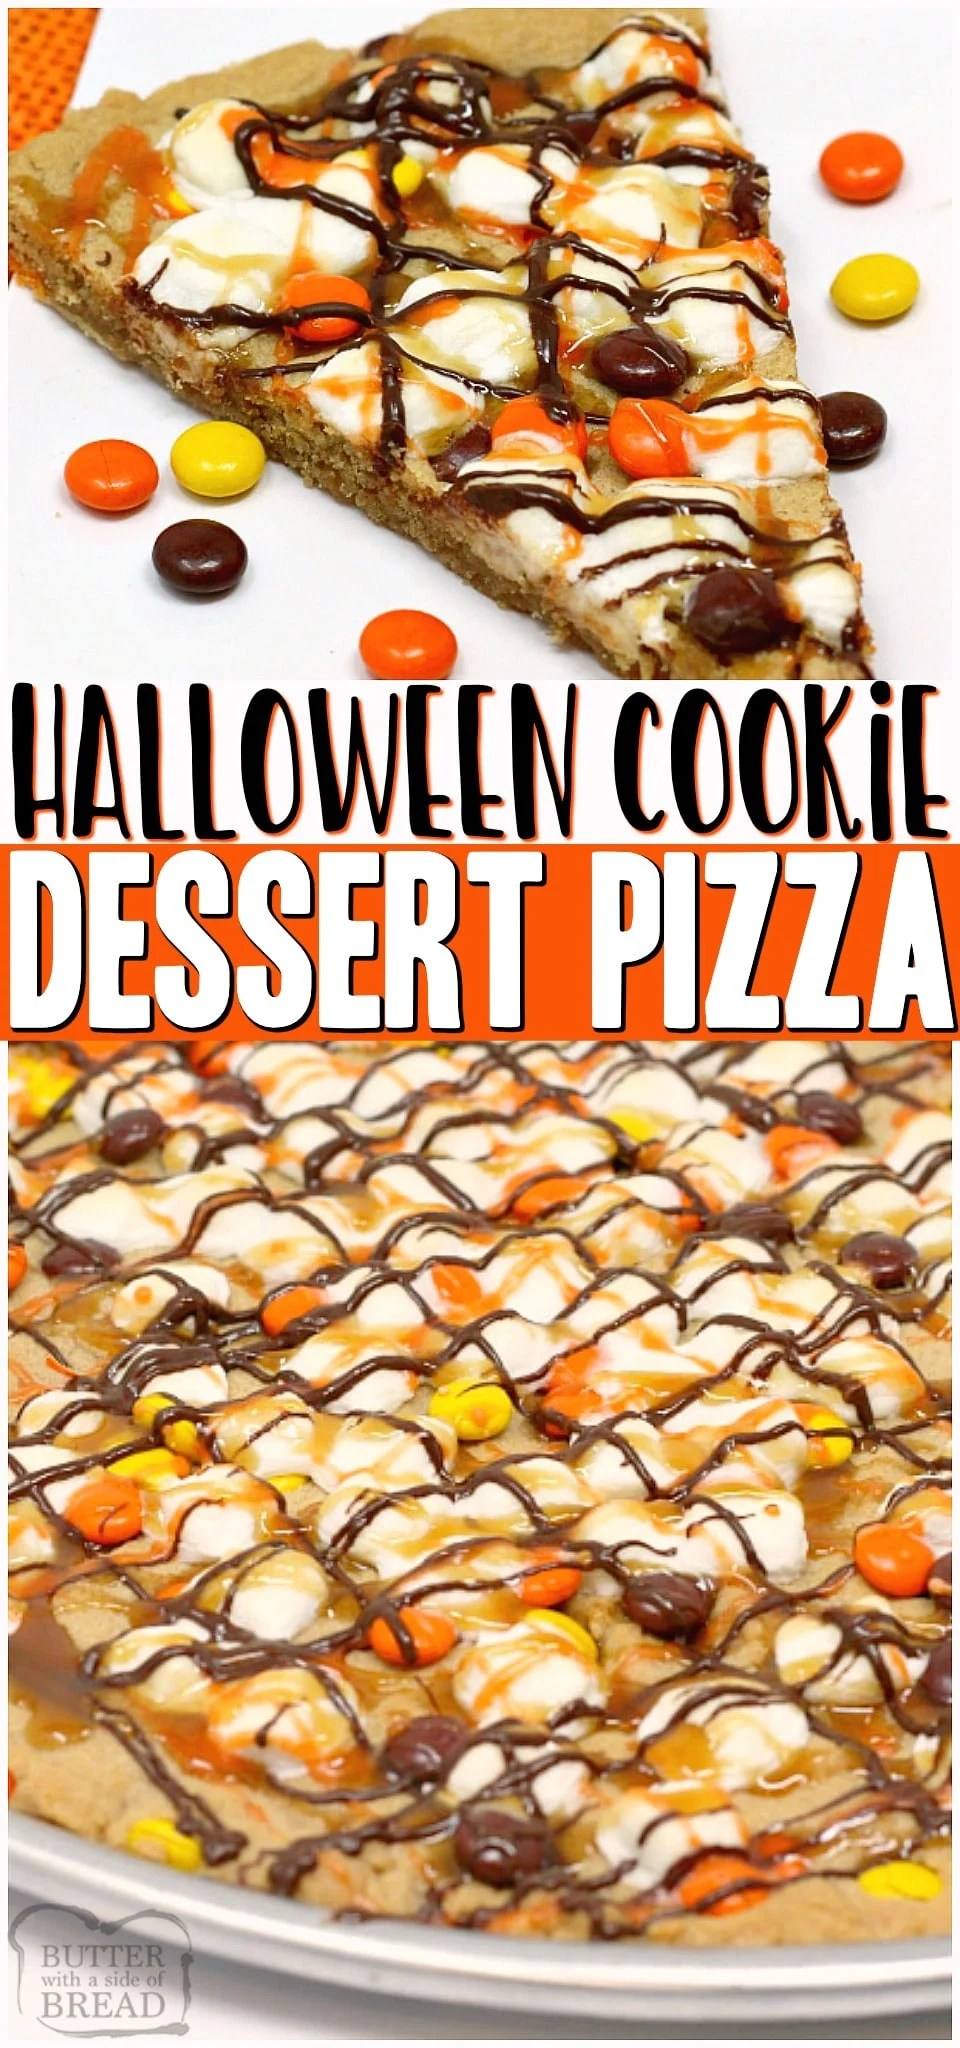 Halloween Peanut Butter Cookie Pizza is made with a delicious peanut butter cookie crust that is topped with marshmallows and Reese's Pieces and then drizzled with chocolate, caramel and orange icing! The perfect Halloween dessert! #cookie #pizza #Halloween #peanutbutter #dessert #baking #easyrecipe from BUTTER WITH A SIDE OF BREAD